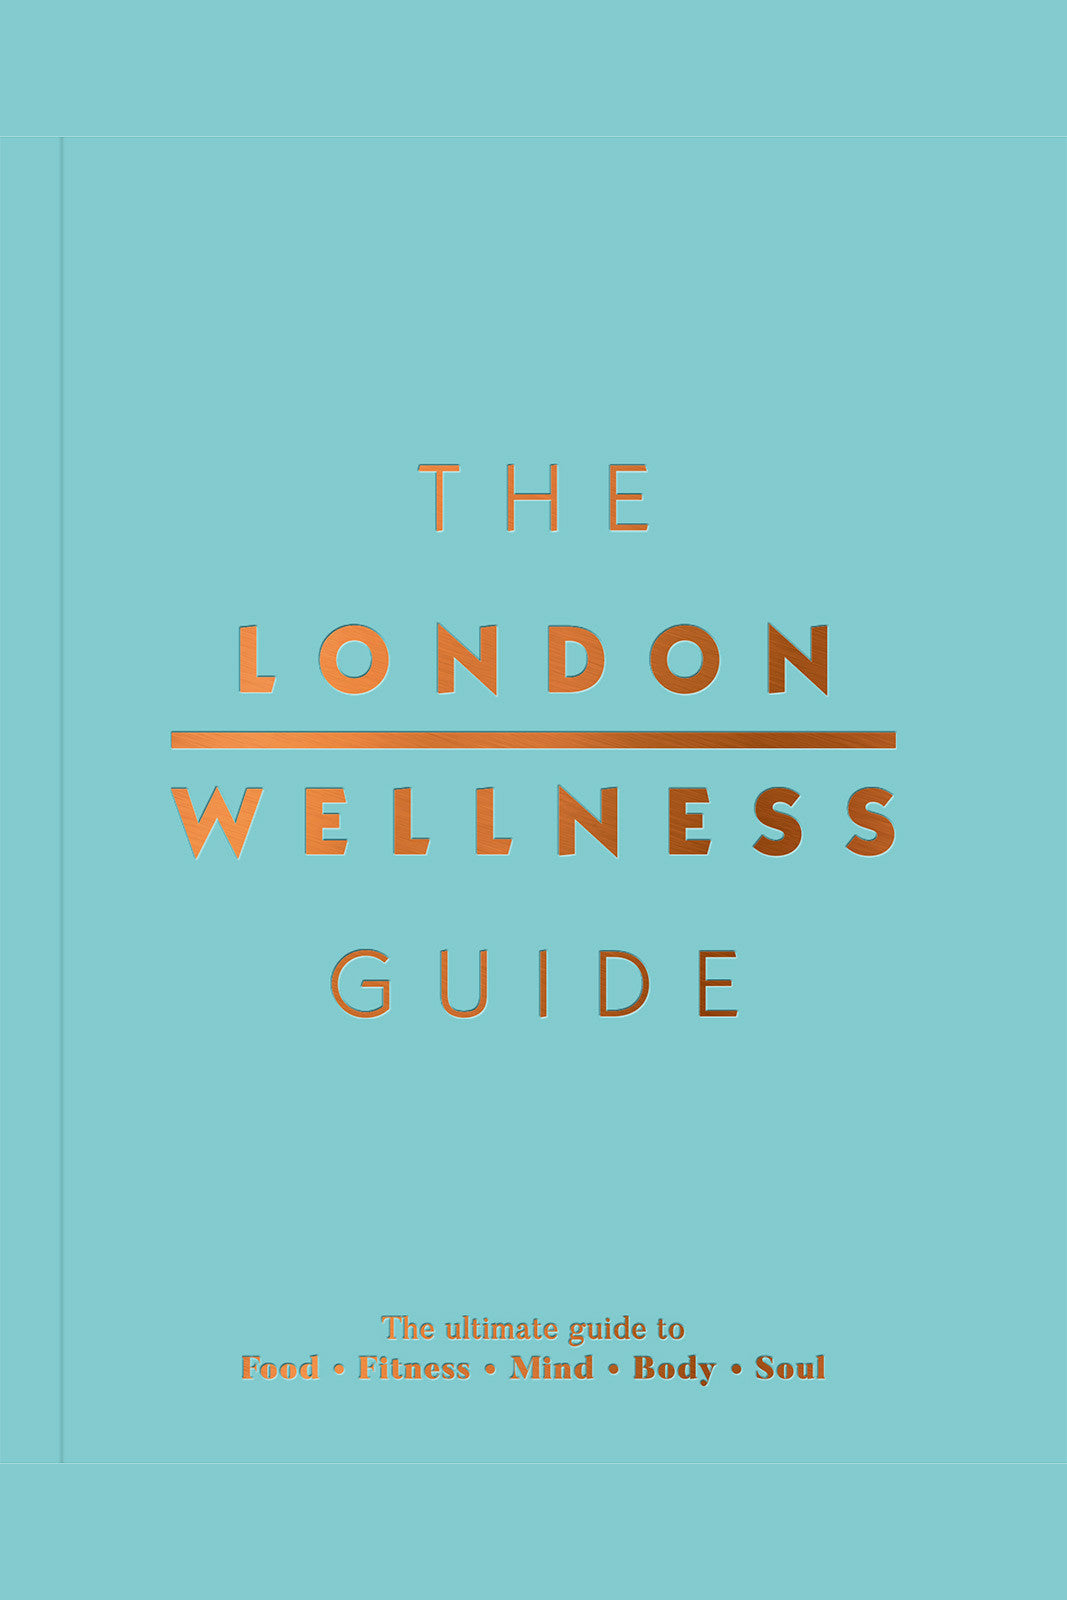 London Wellness Guide The London Wellness Guide image 1 - The Sports Edit